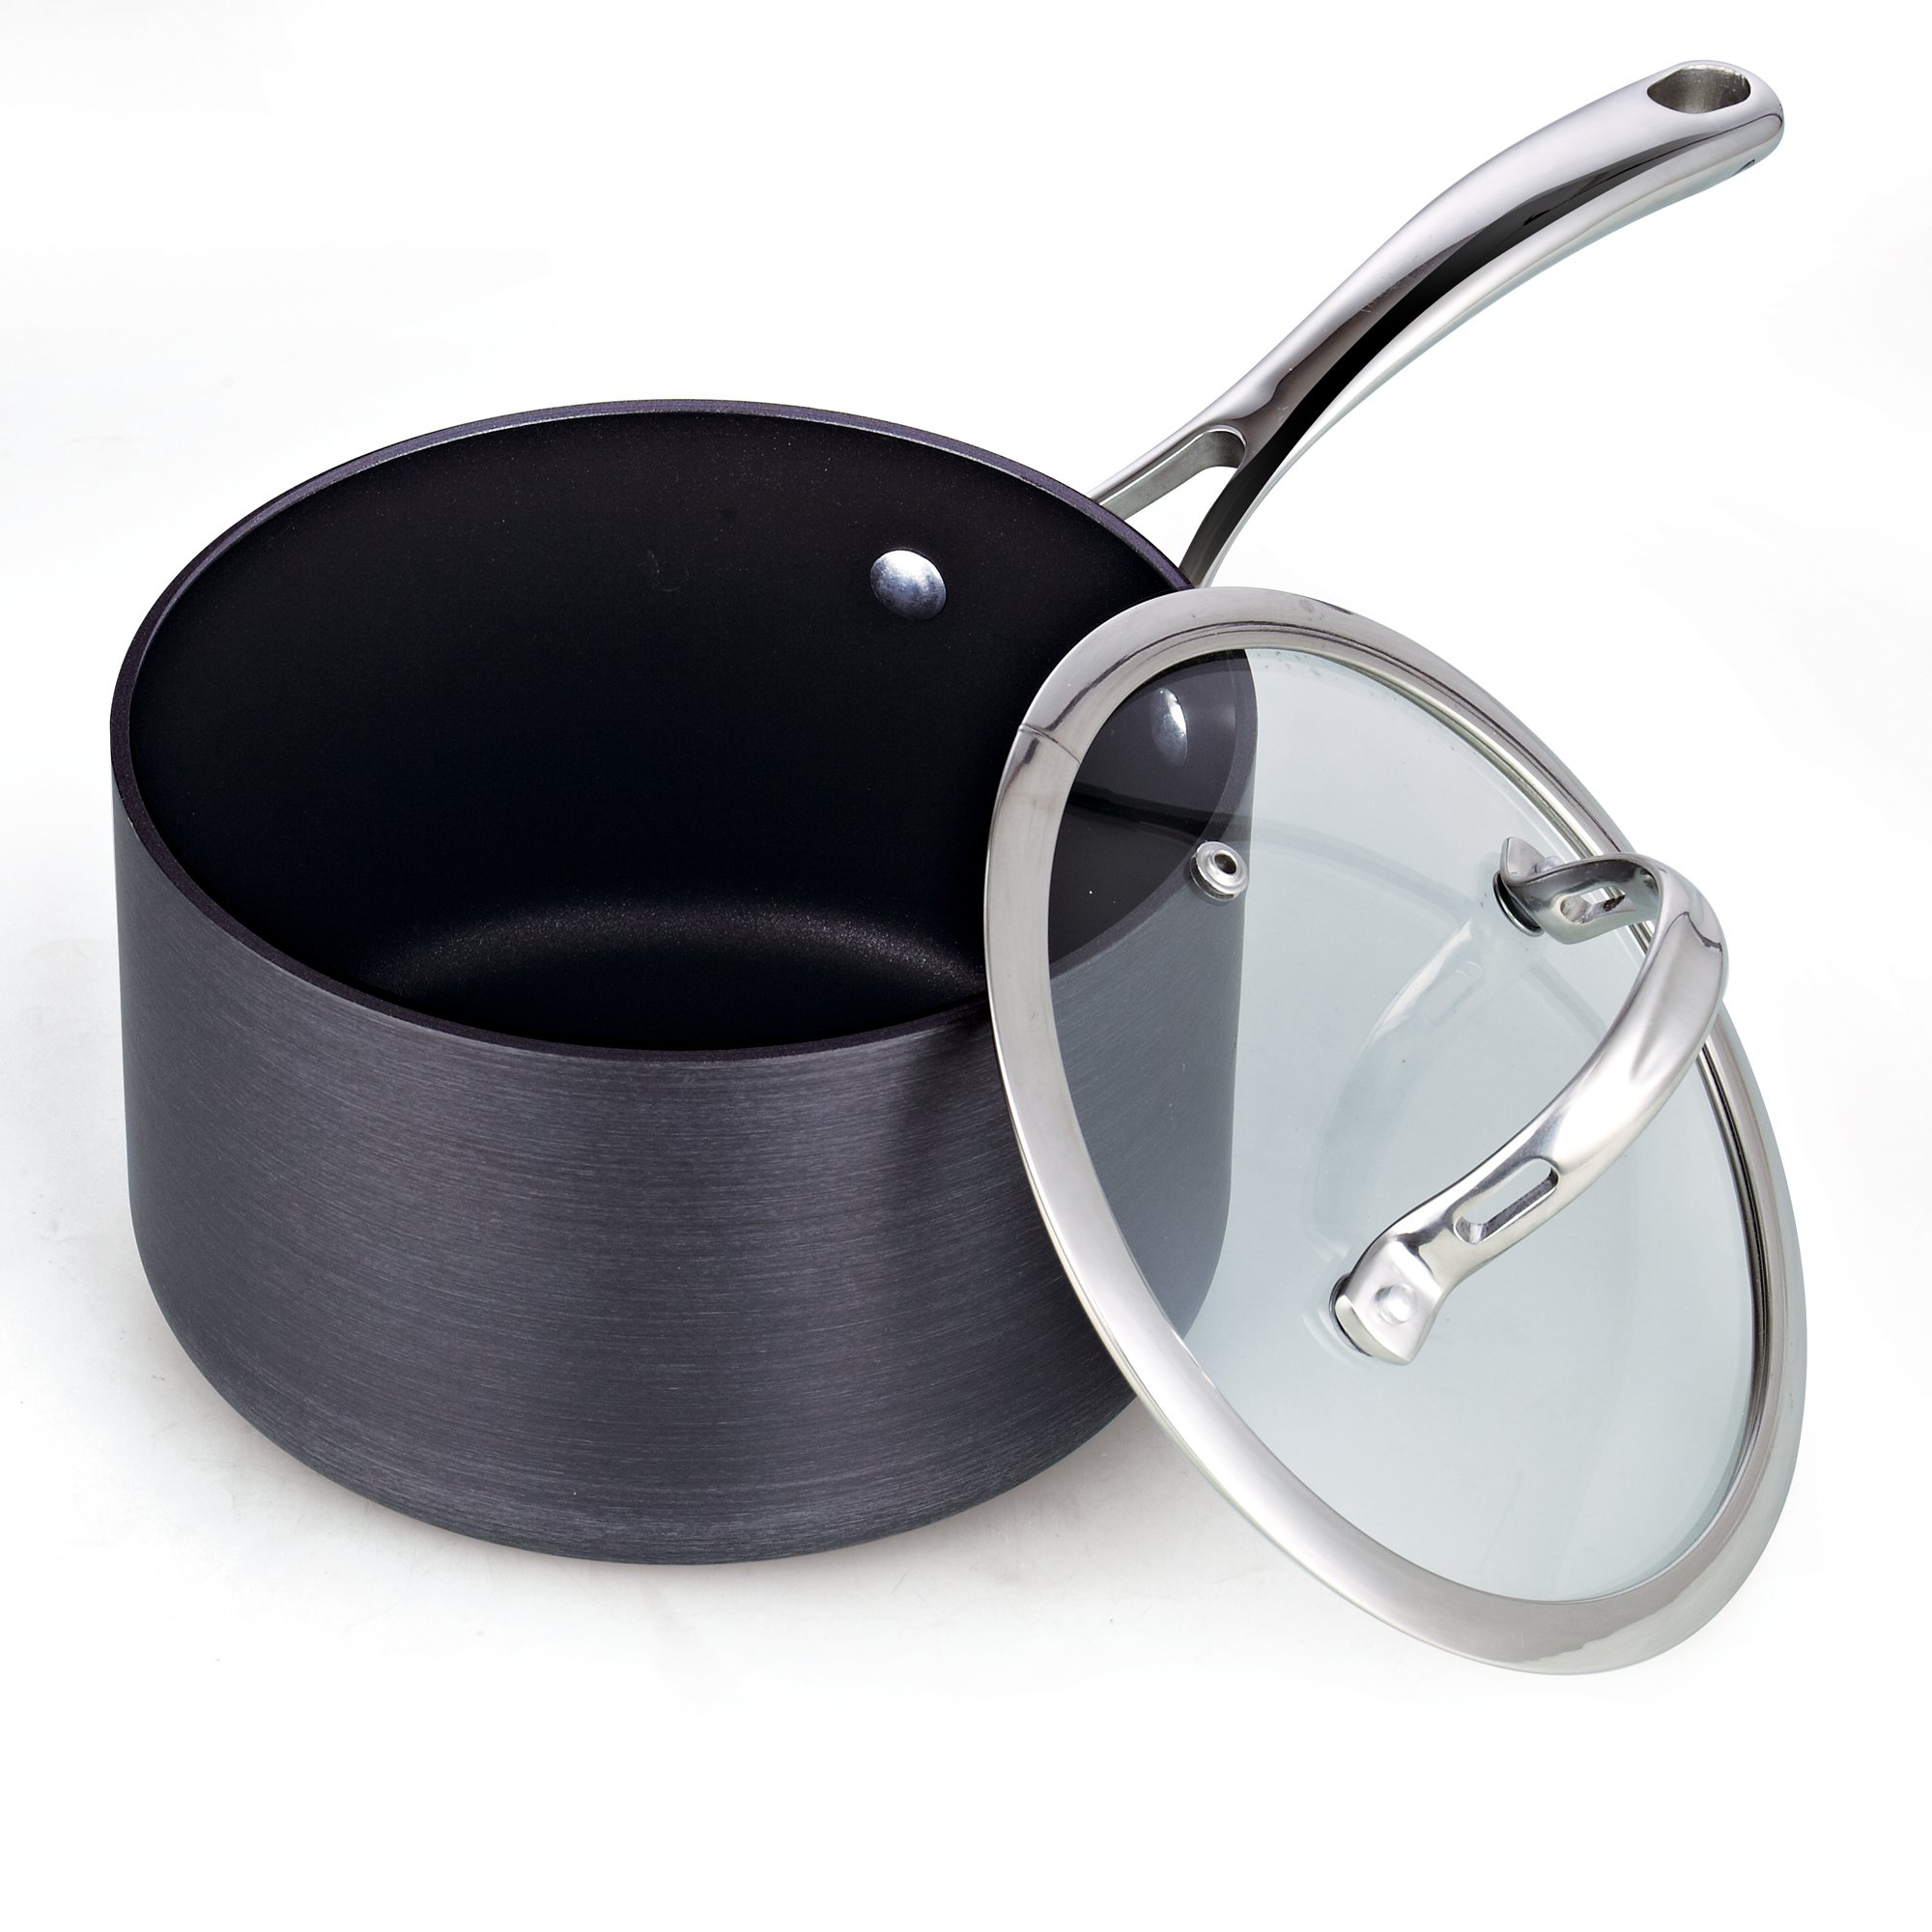 Cooks Standard 3-Quart Hard Anodized Nonstick Saucepan with Lid, Black by Cooks Standard